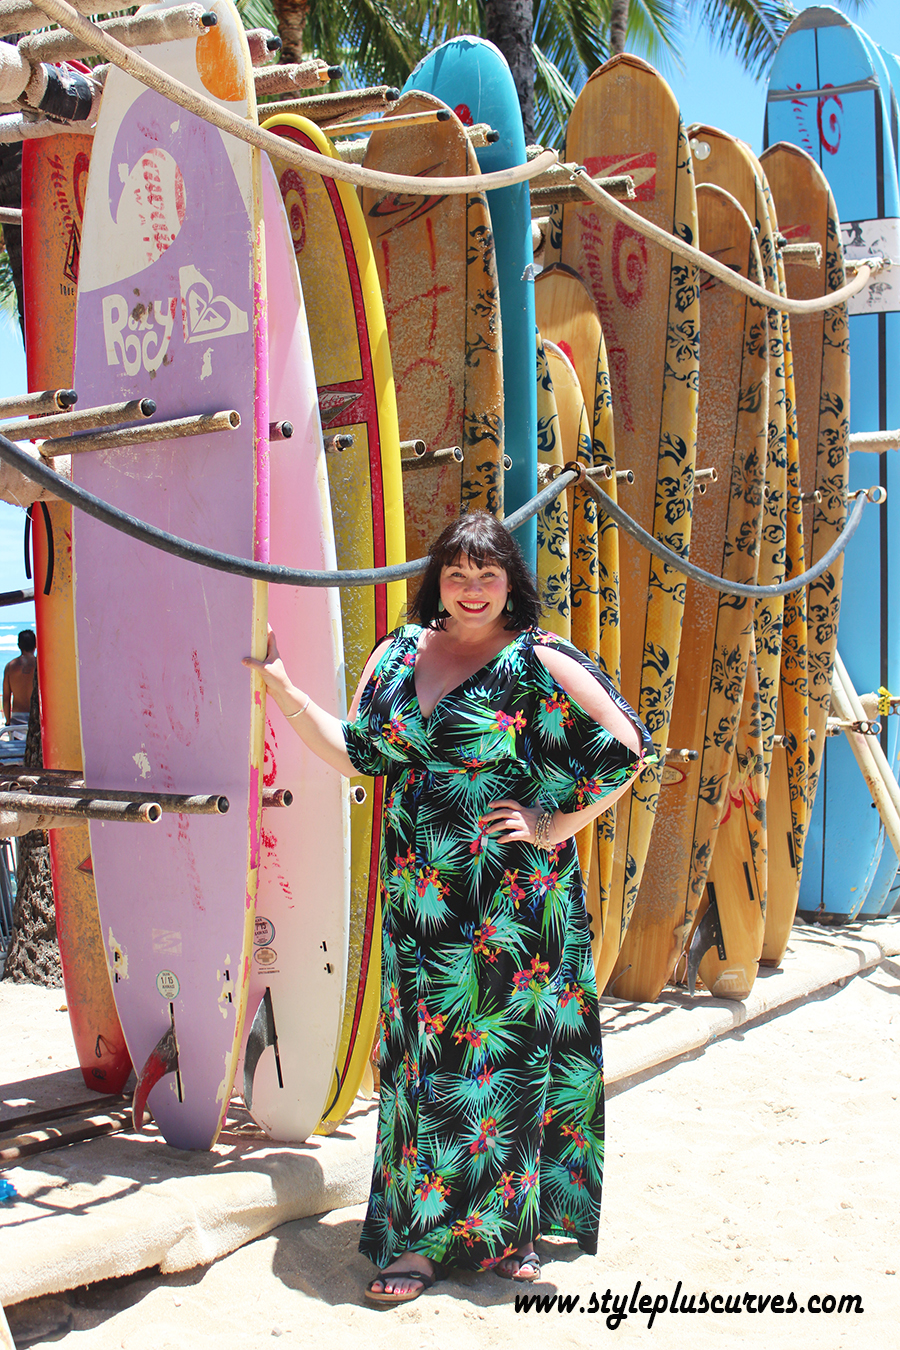 309ad28c0cdc5 ... beach and shopping in Honolulu in this fabulous dress. And did I  mention it packs like a dream  plus size vacation dress in tropical print  from Kiyonna